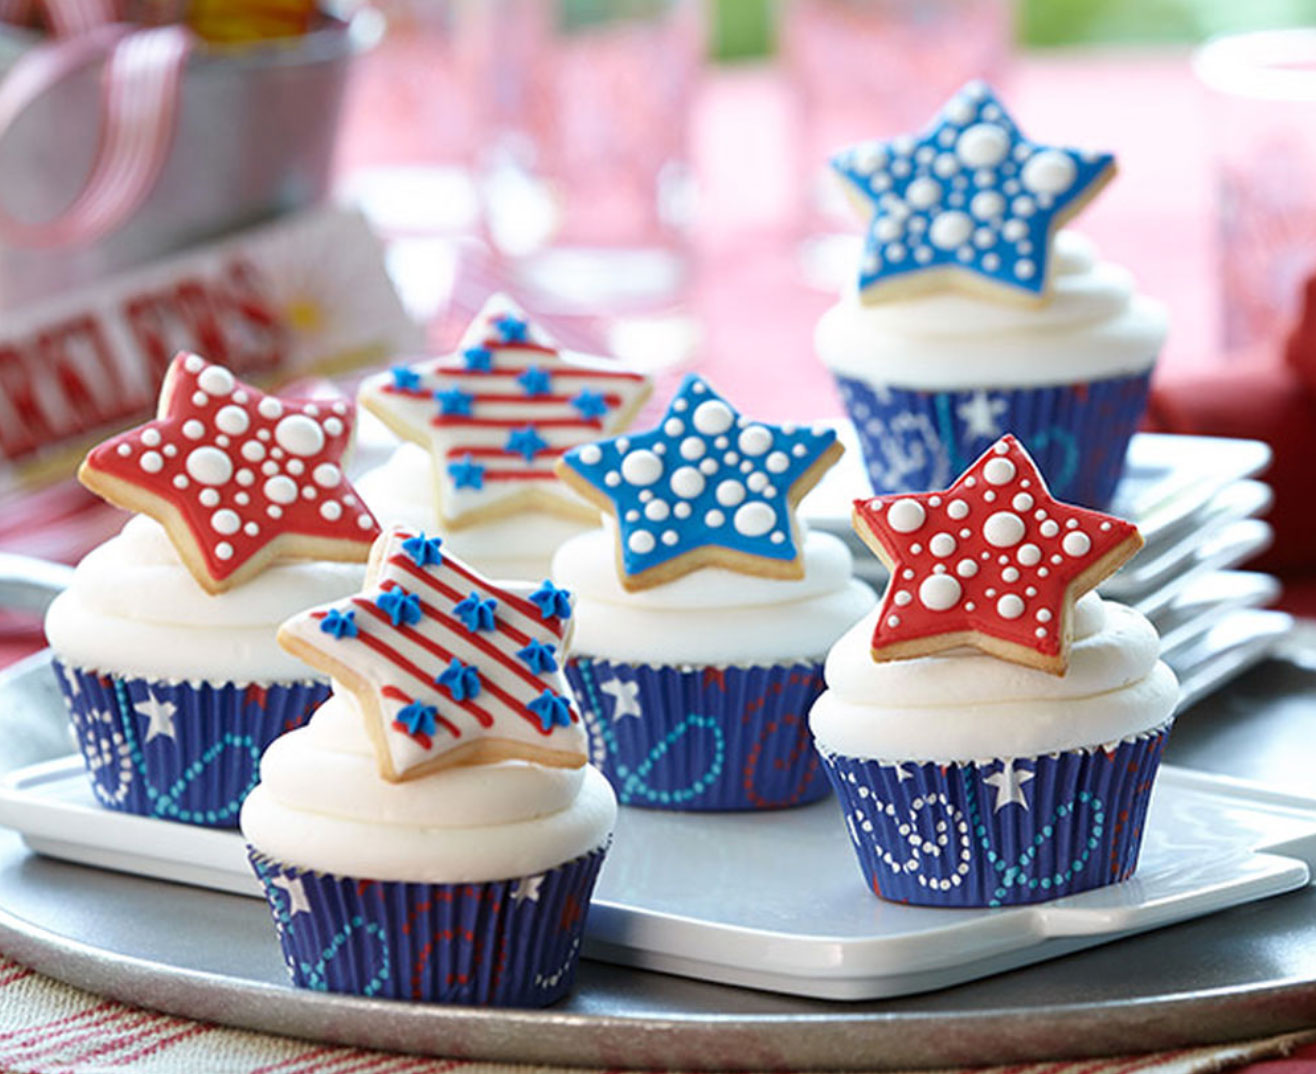 We Have 9 Reasons Why Patriotic Cupcakes Need to Be on Your 4th of